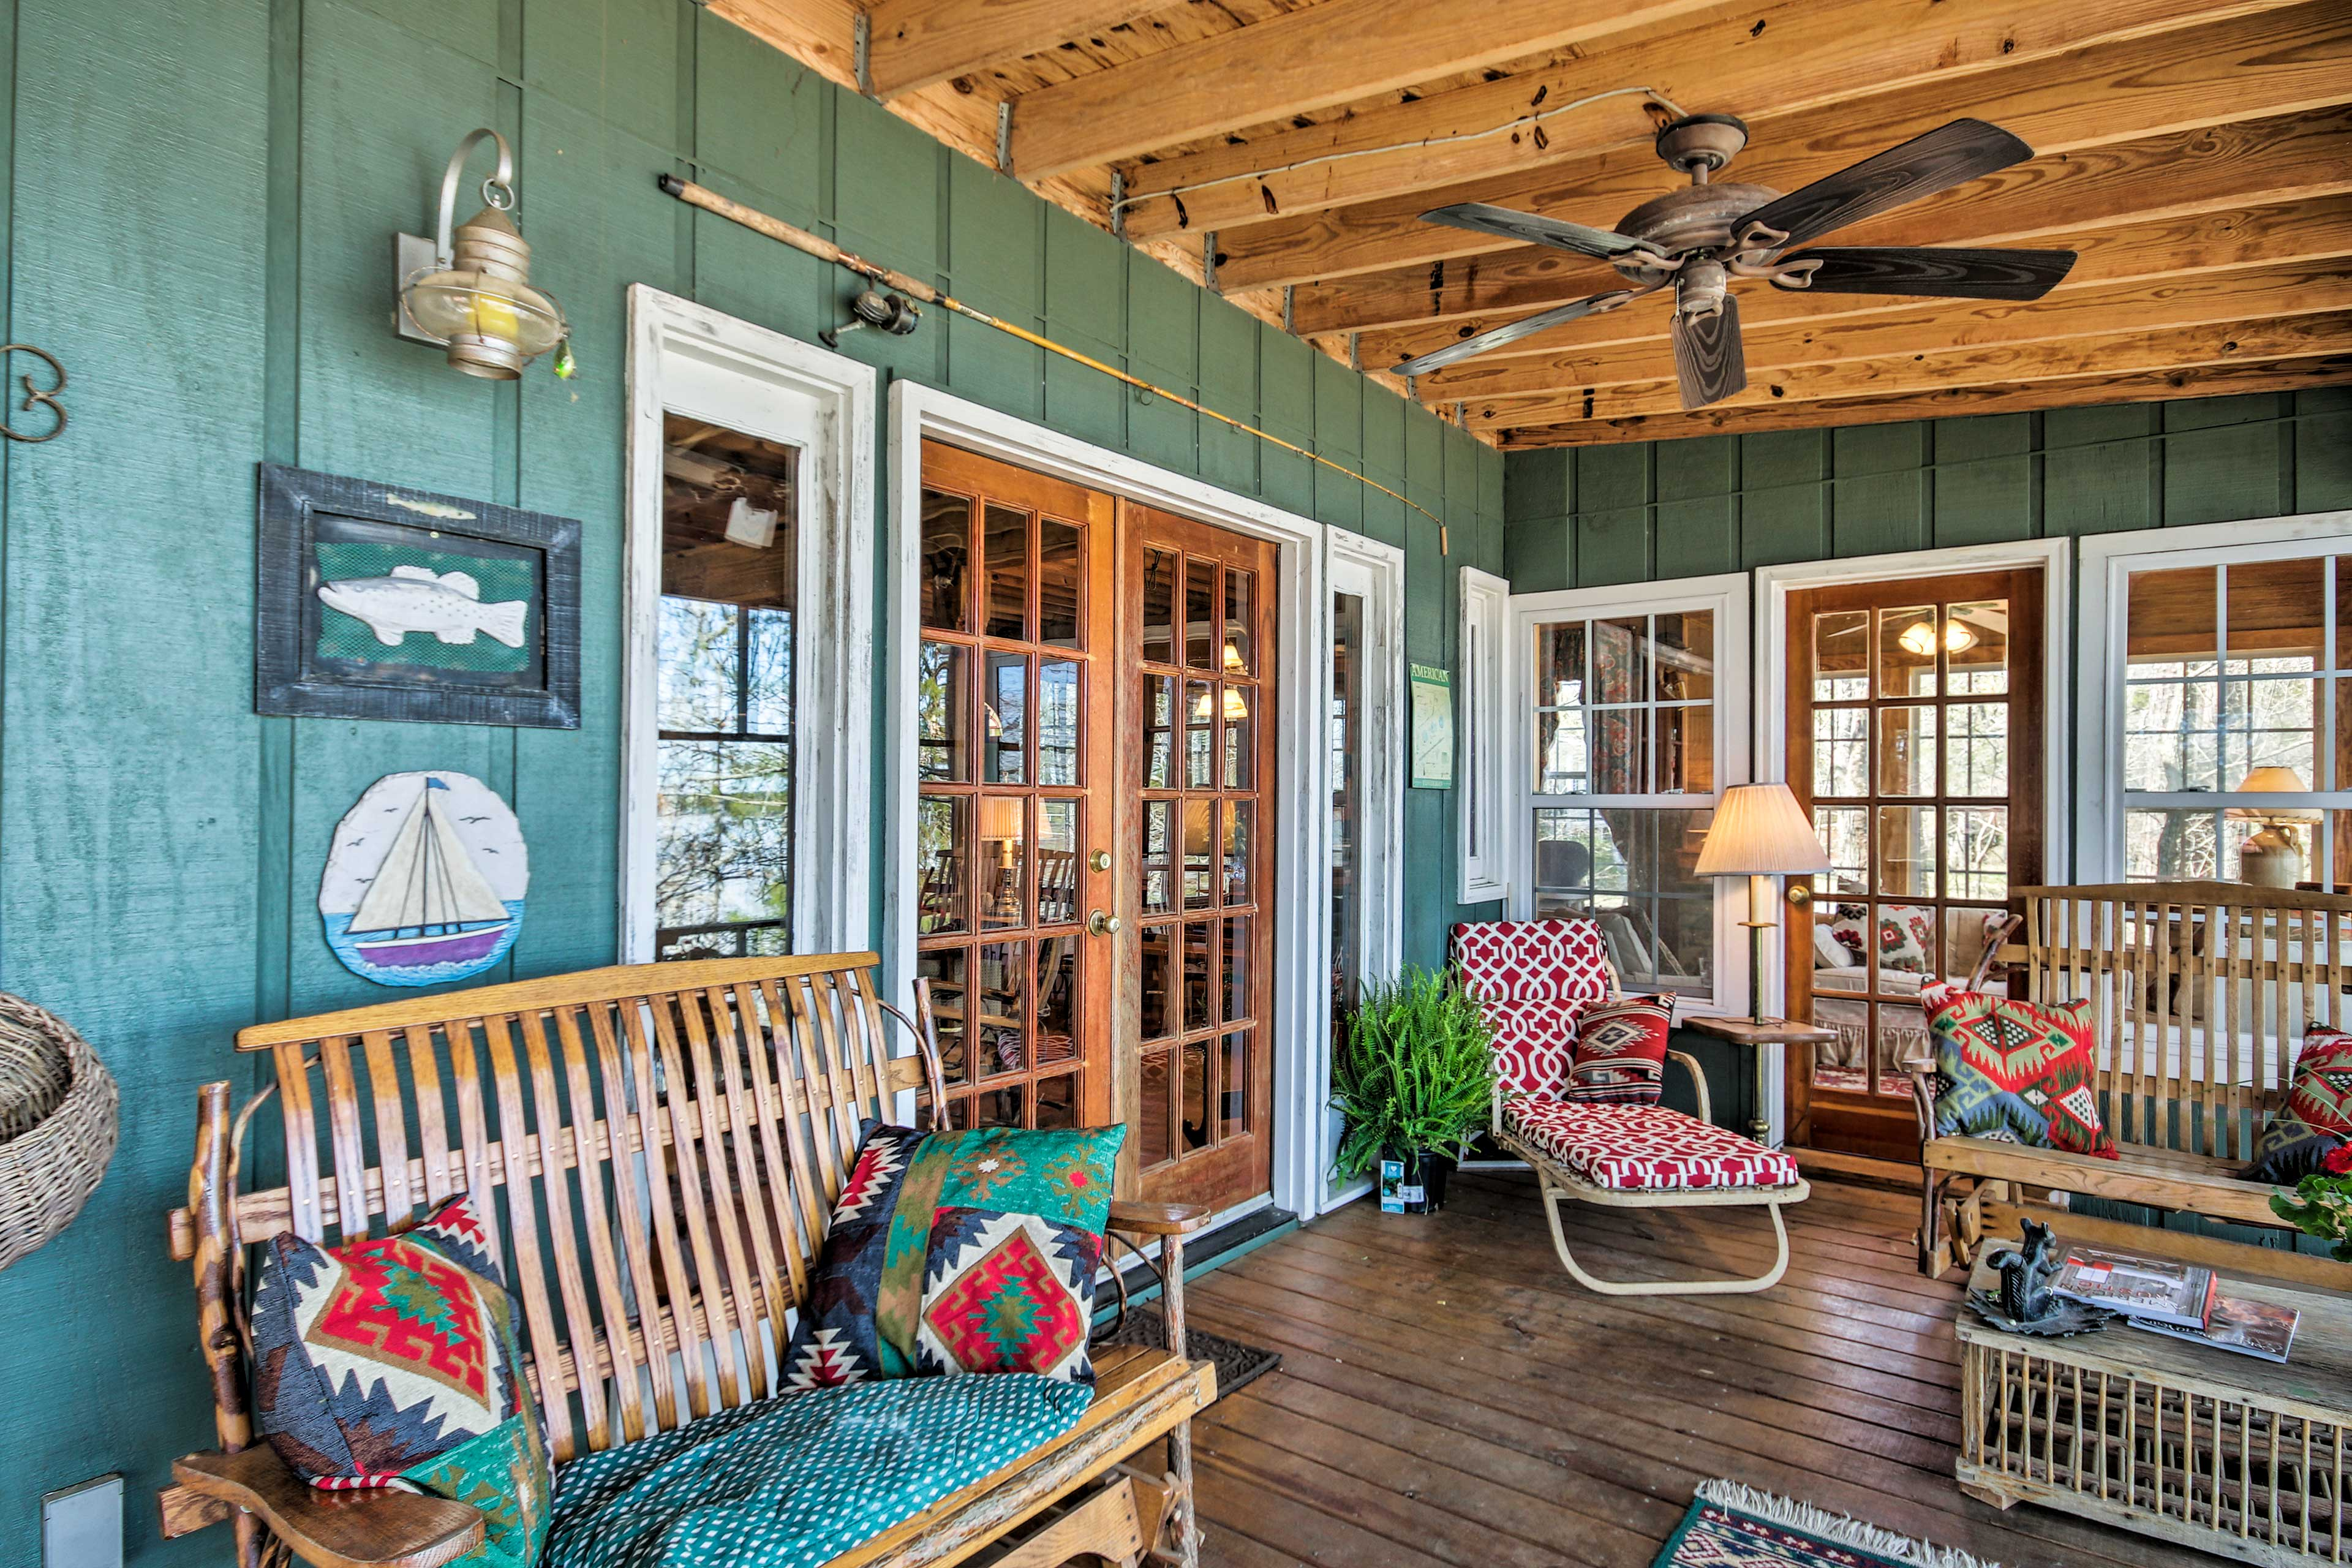 Fifteen guests will love staying at this charming home!